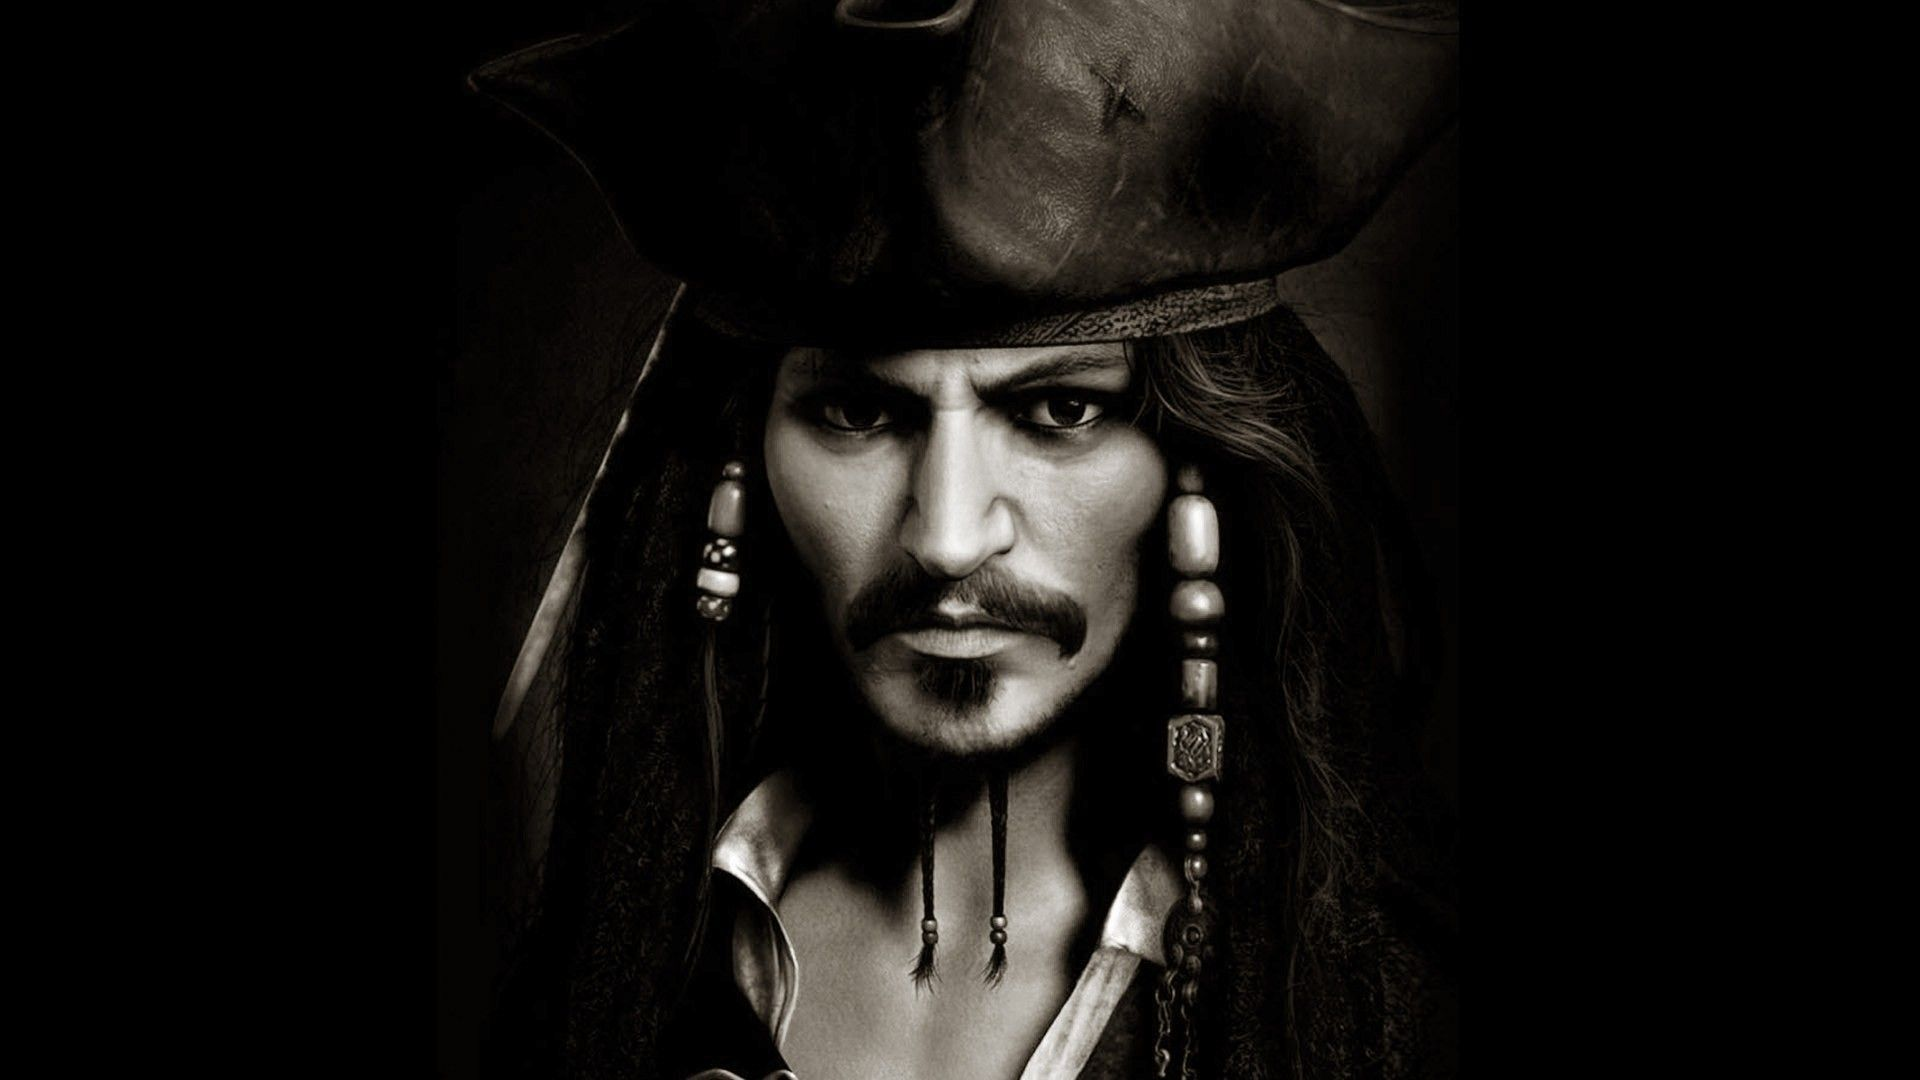 Johnny Depp Pirate Quotes. QuotesGram